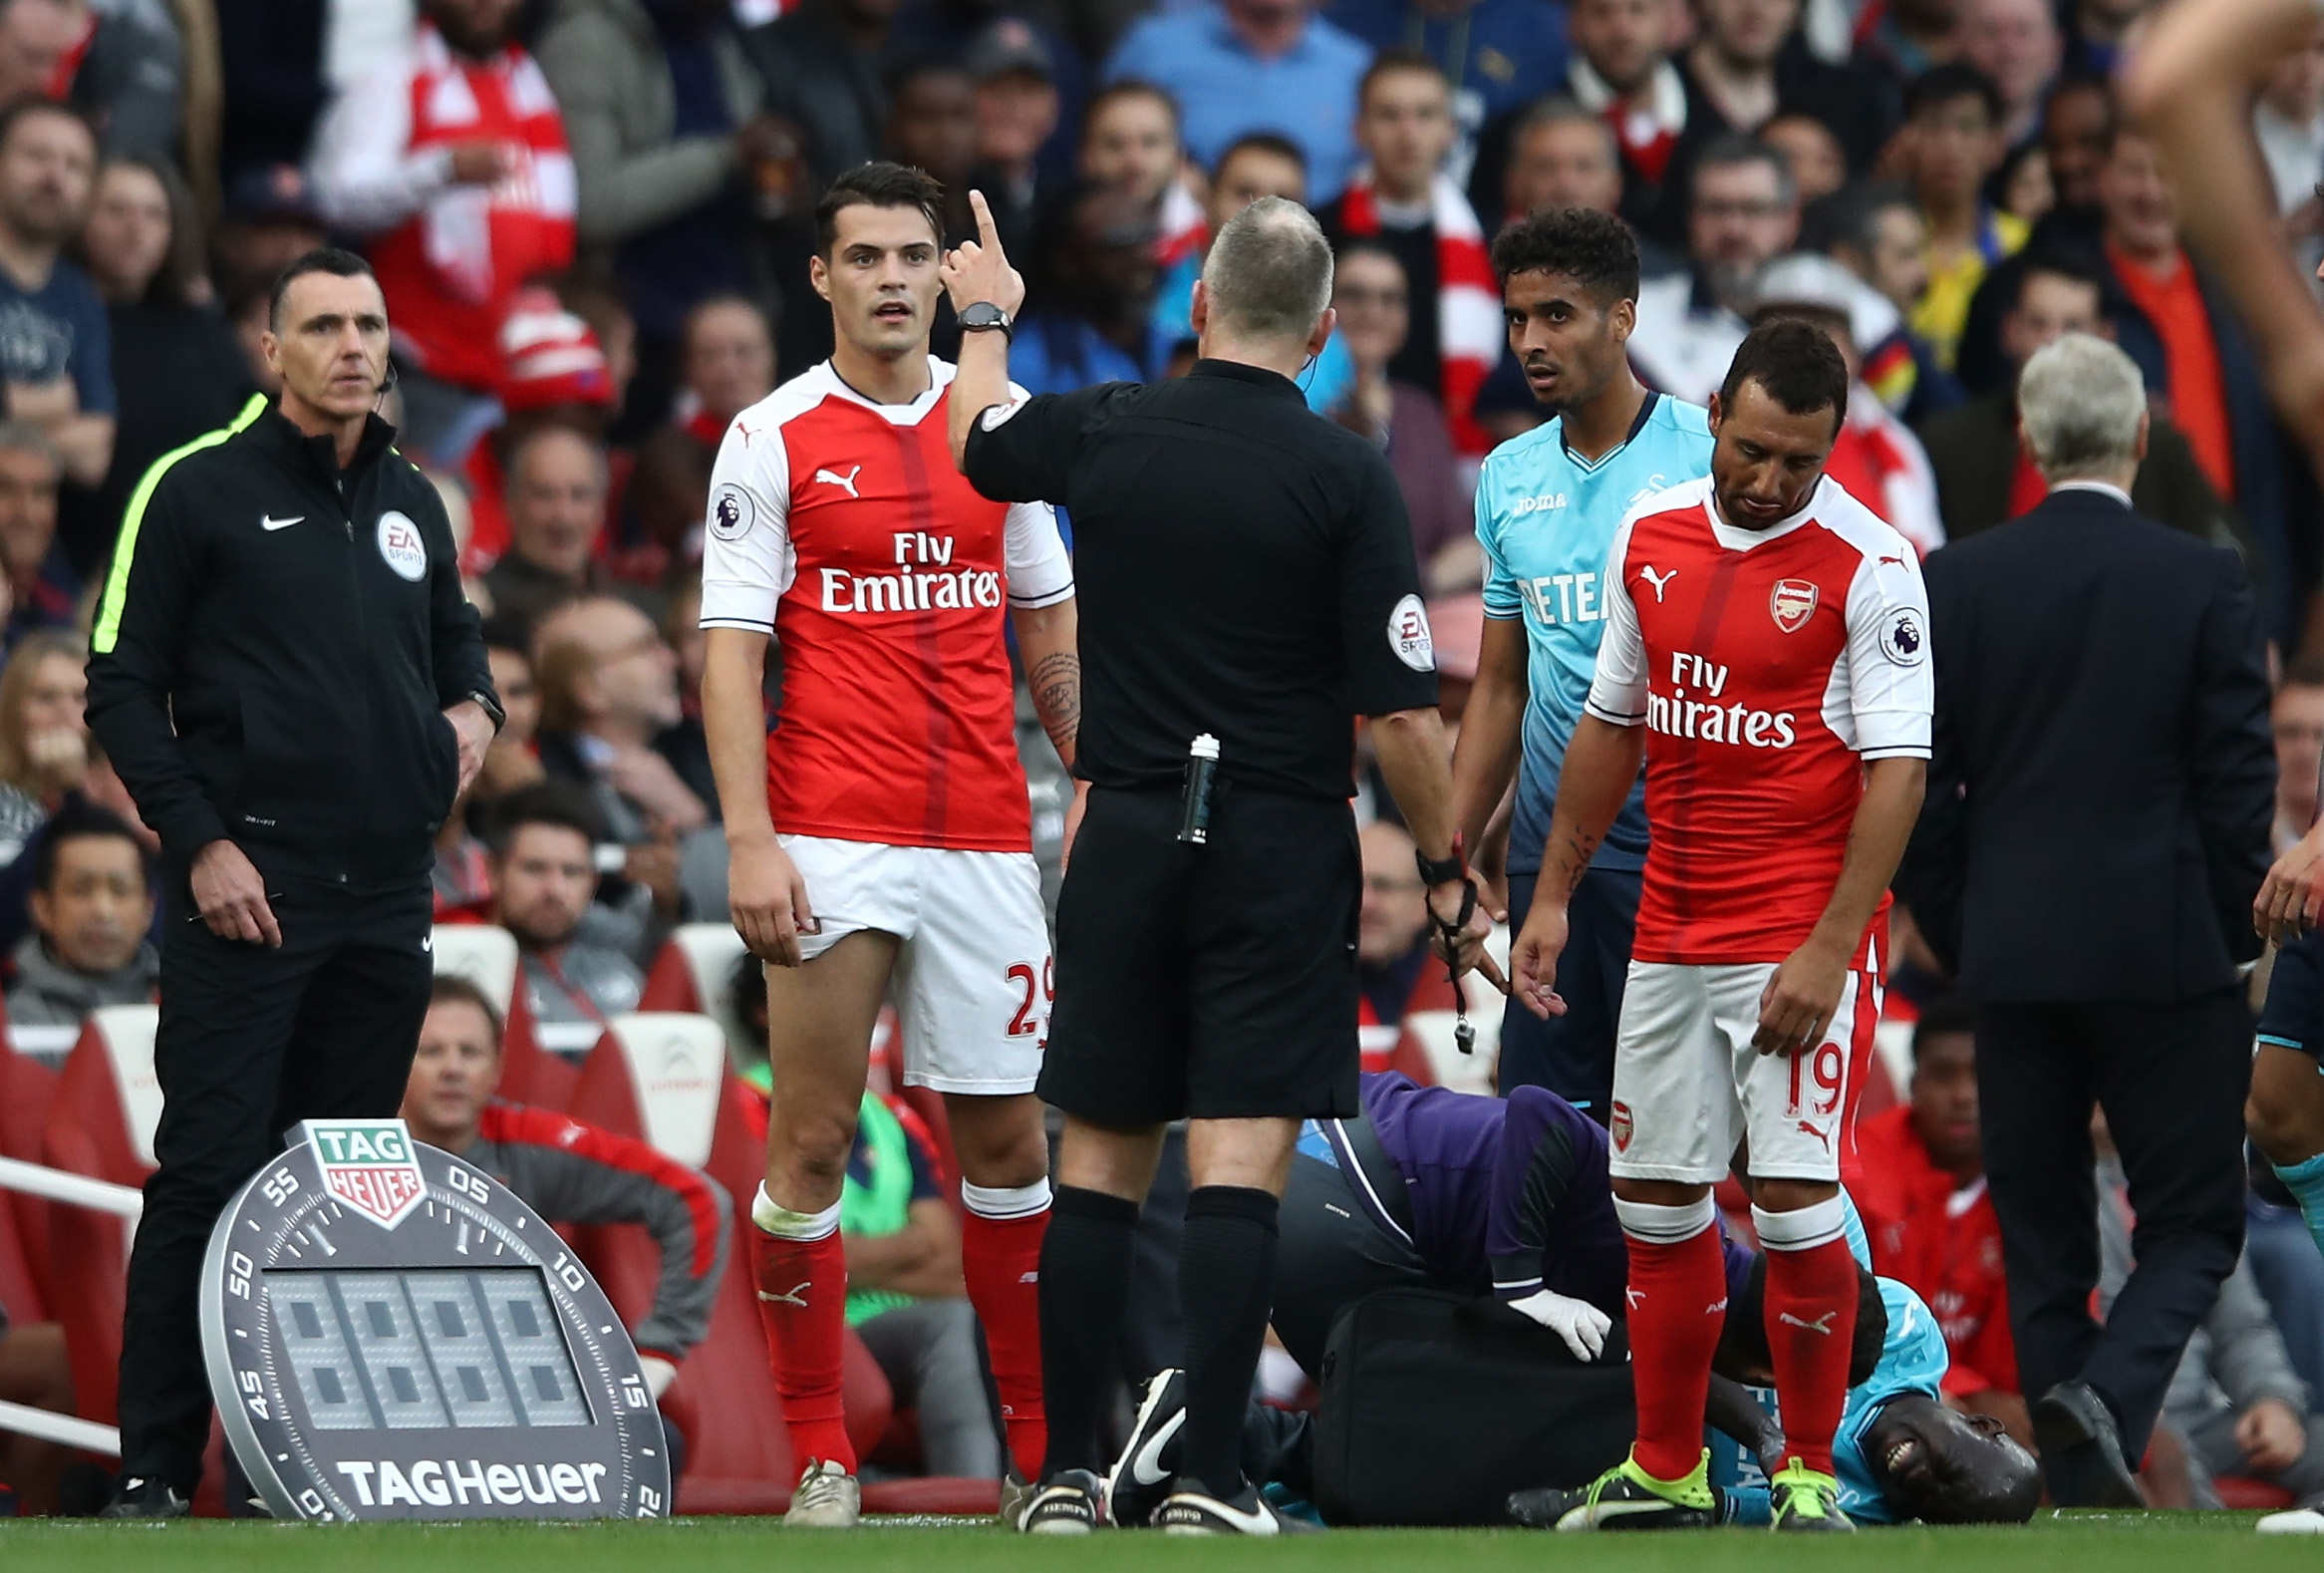 Arsenal have 30 Premier League wins in games when they've had a player sent off